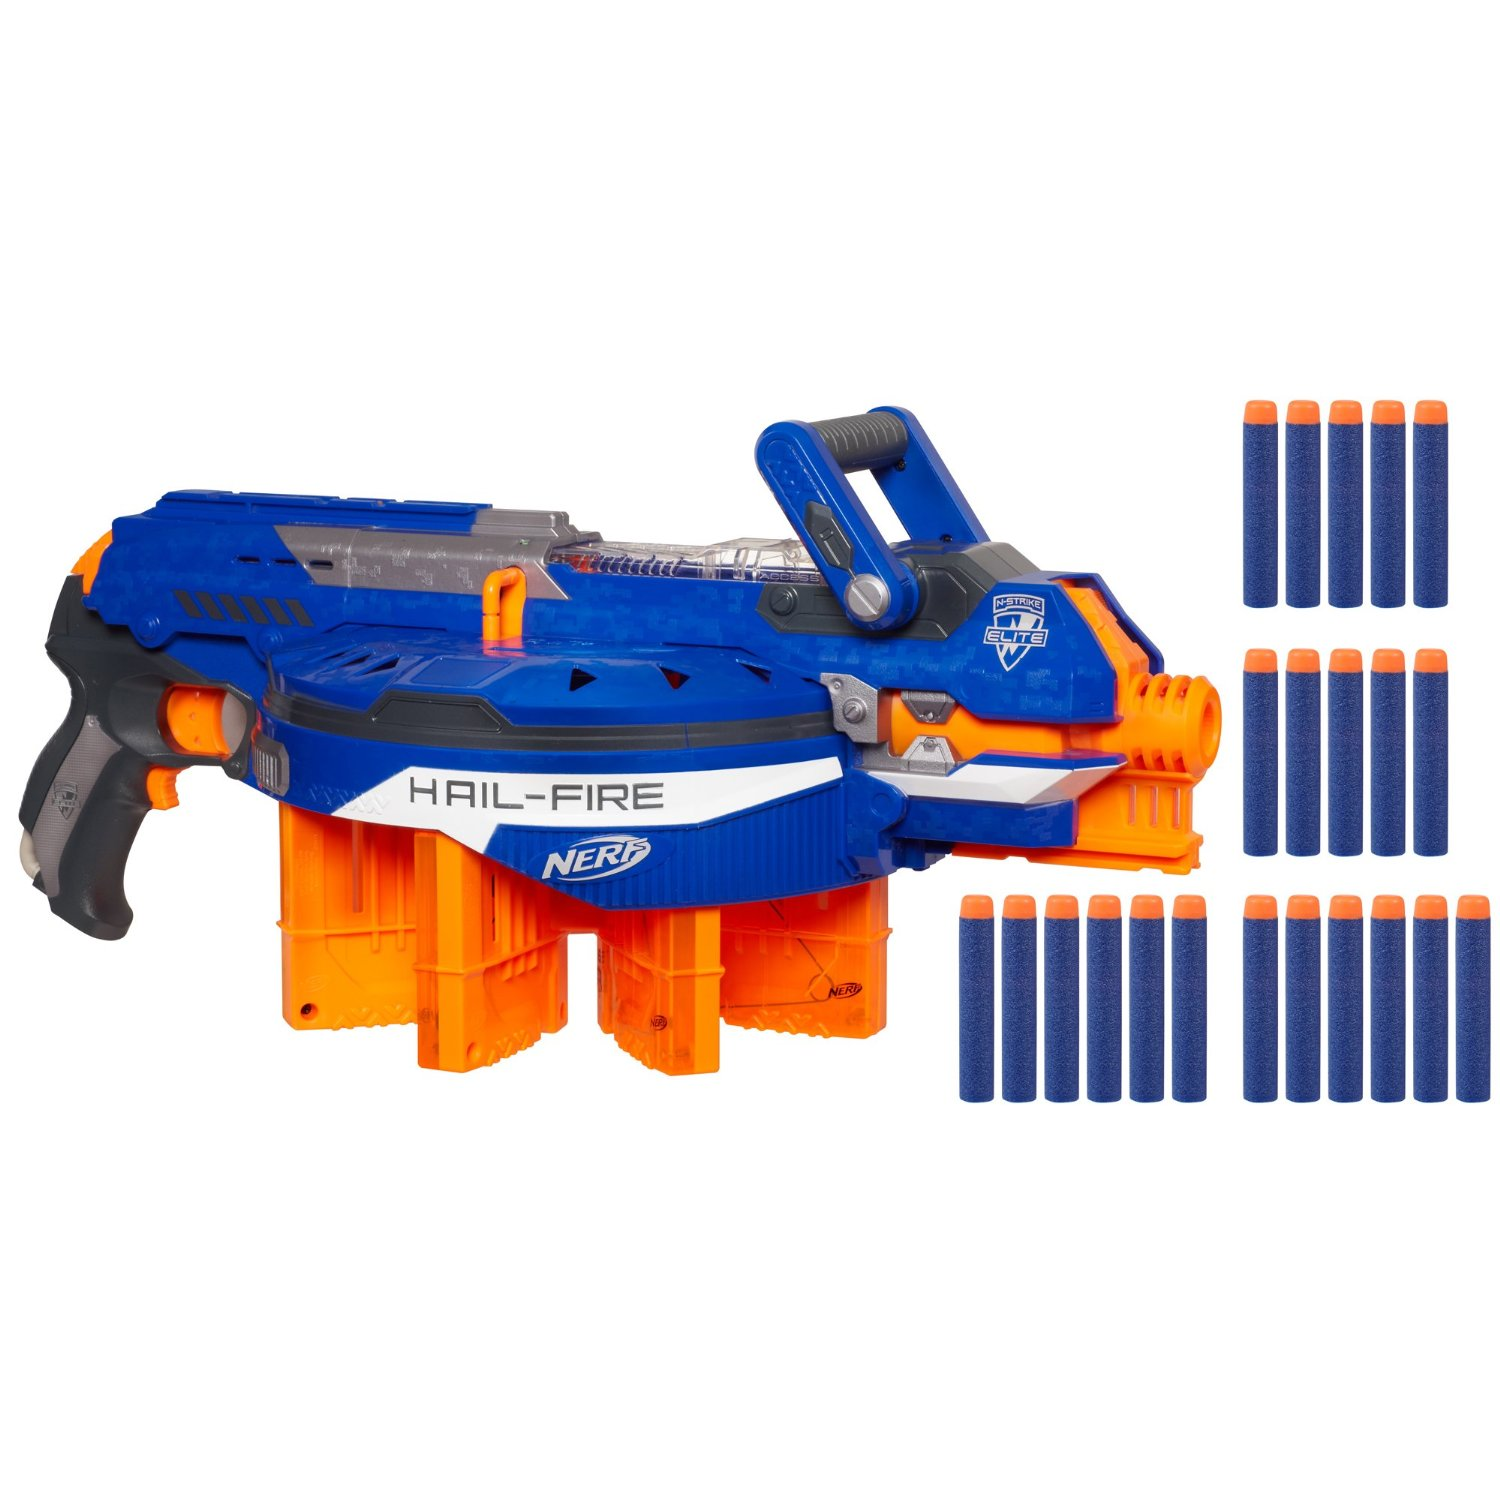 Nerf Hail Fire Nerf N Strike Elite Hail Fire Blaster Just $29.88 (reg. $39.99) + FREE Shipping!